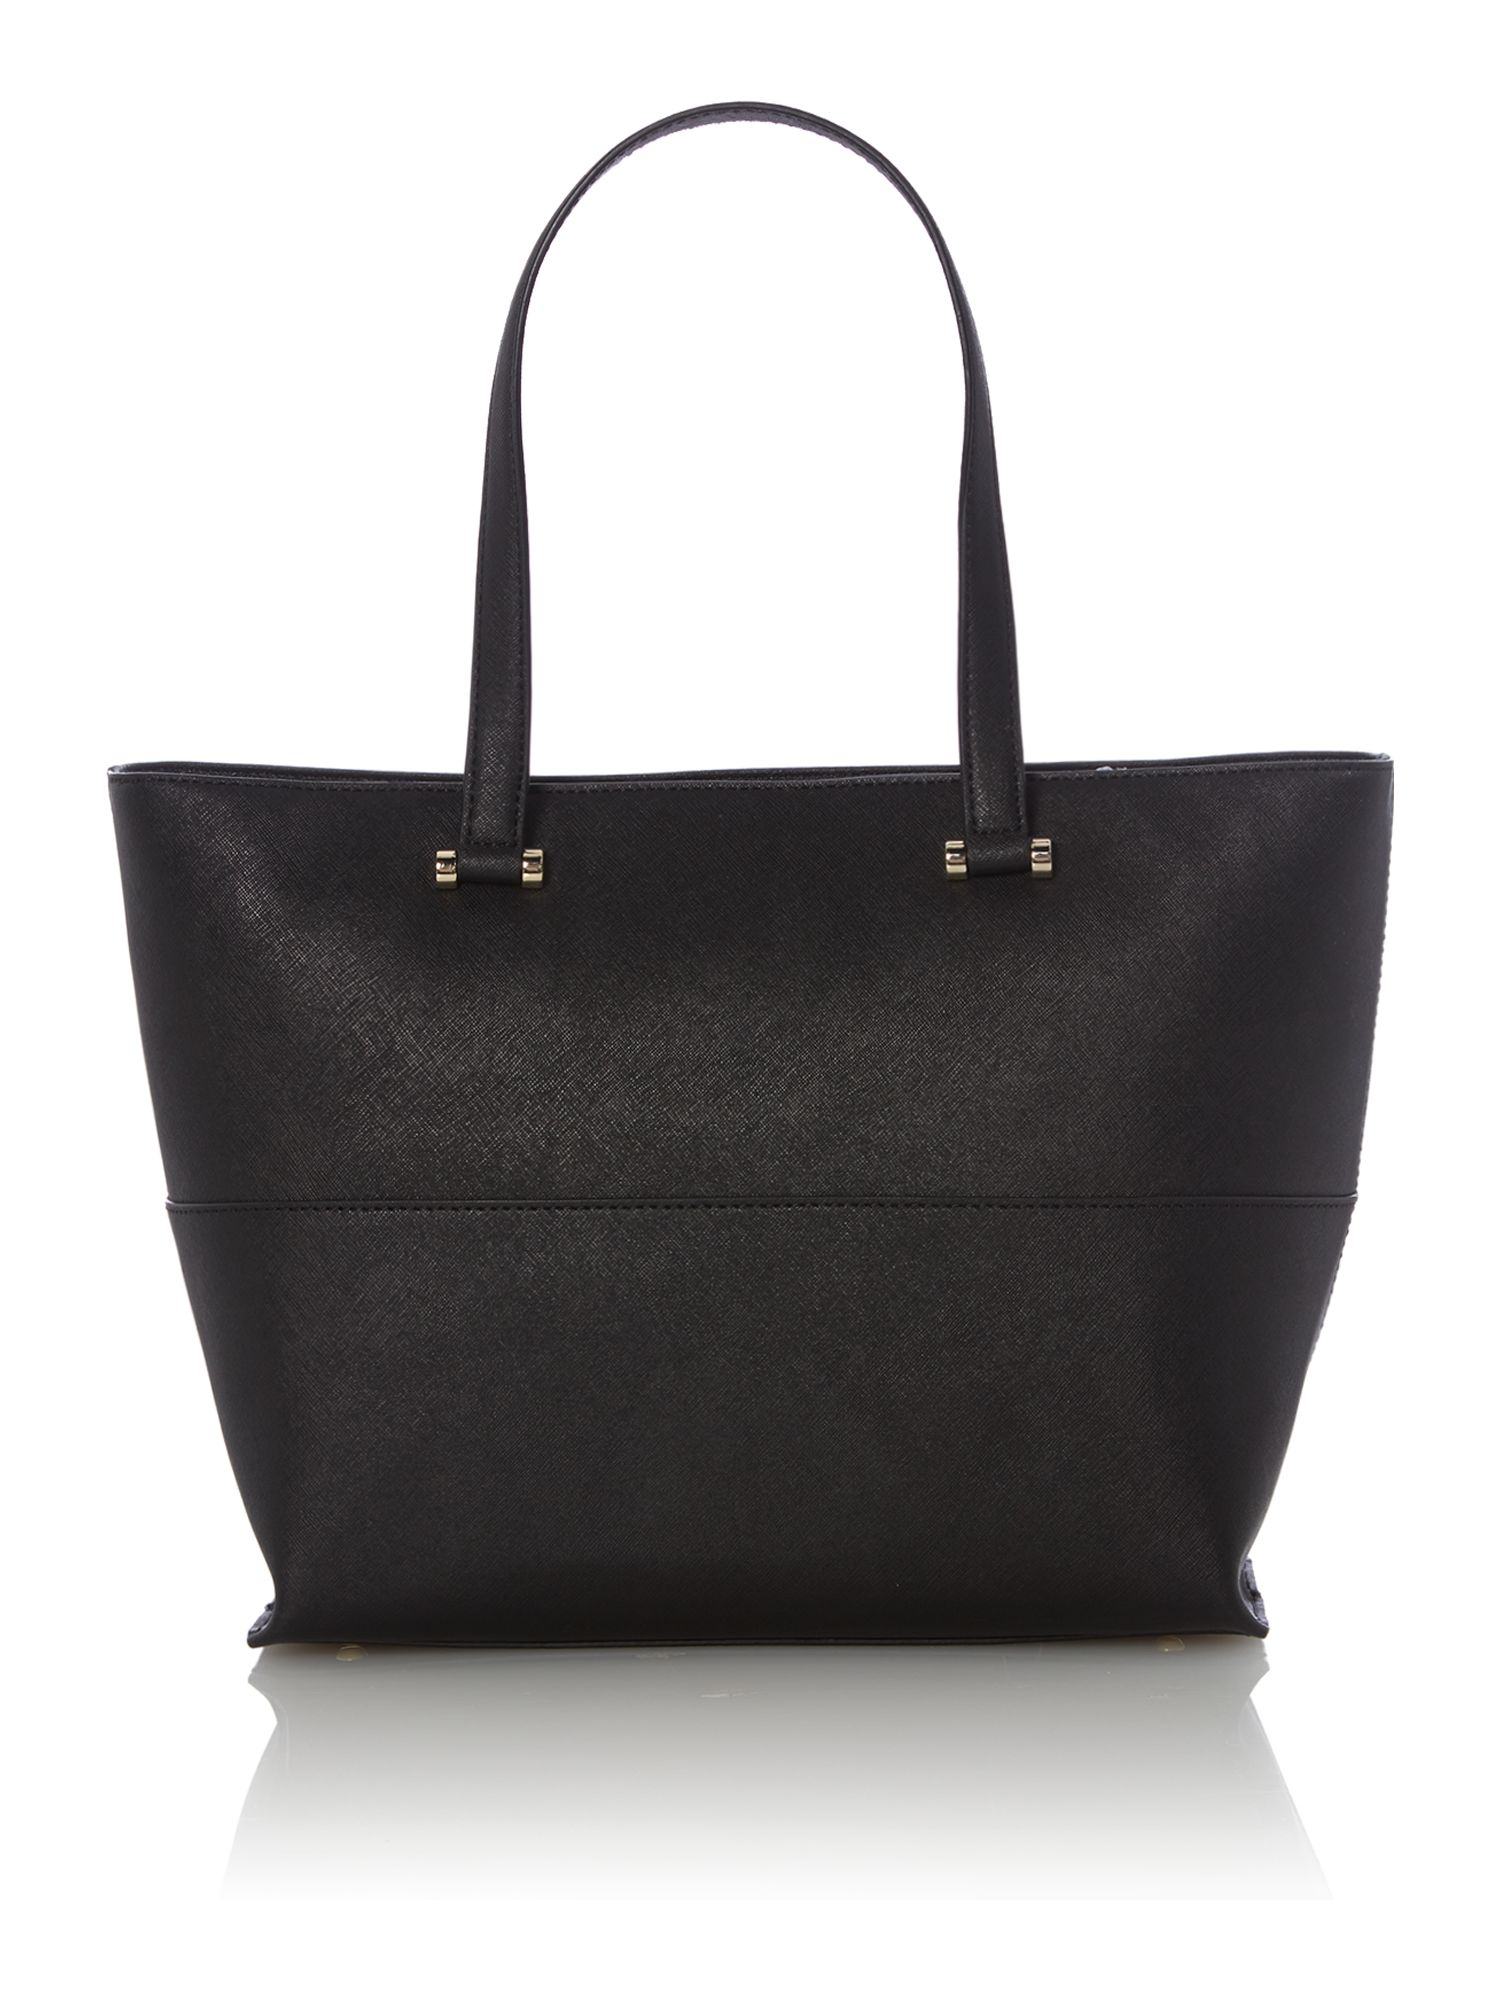 Saffiano black tote bag with pocket